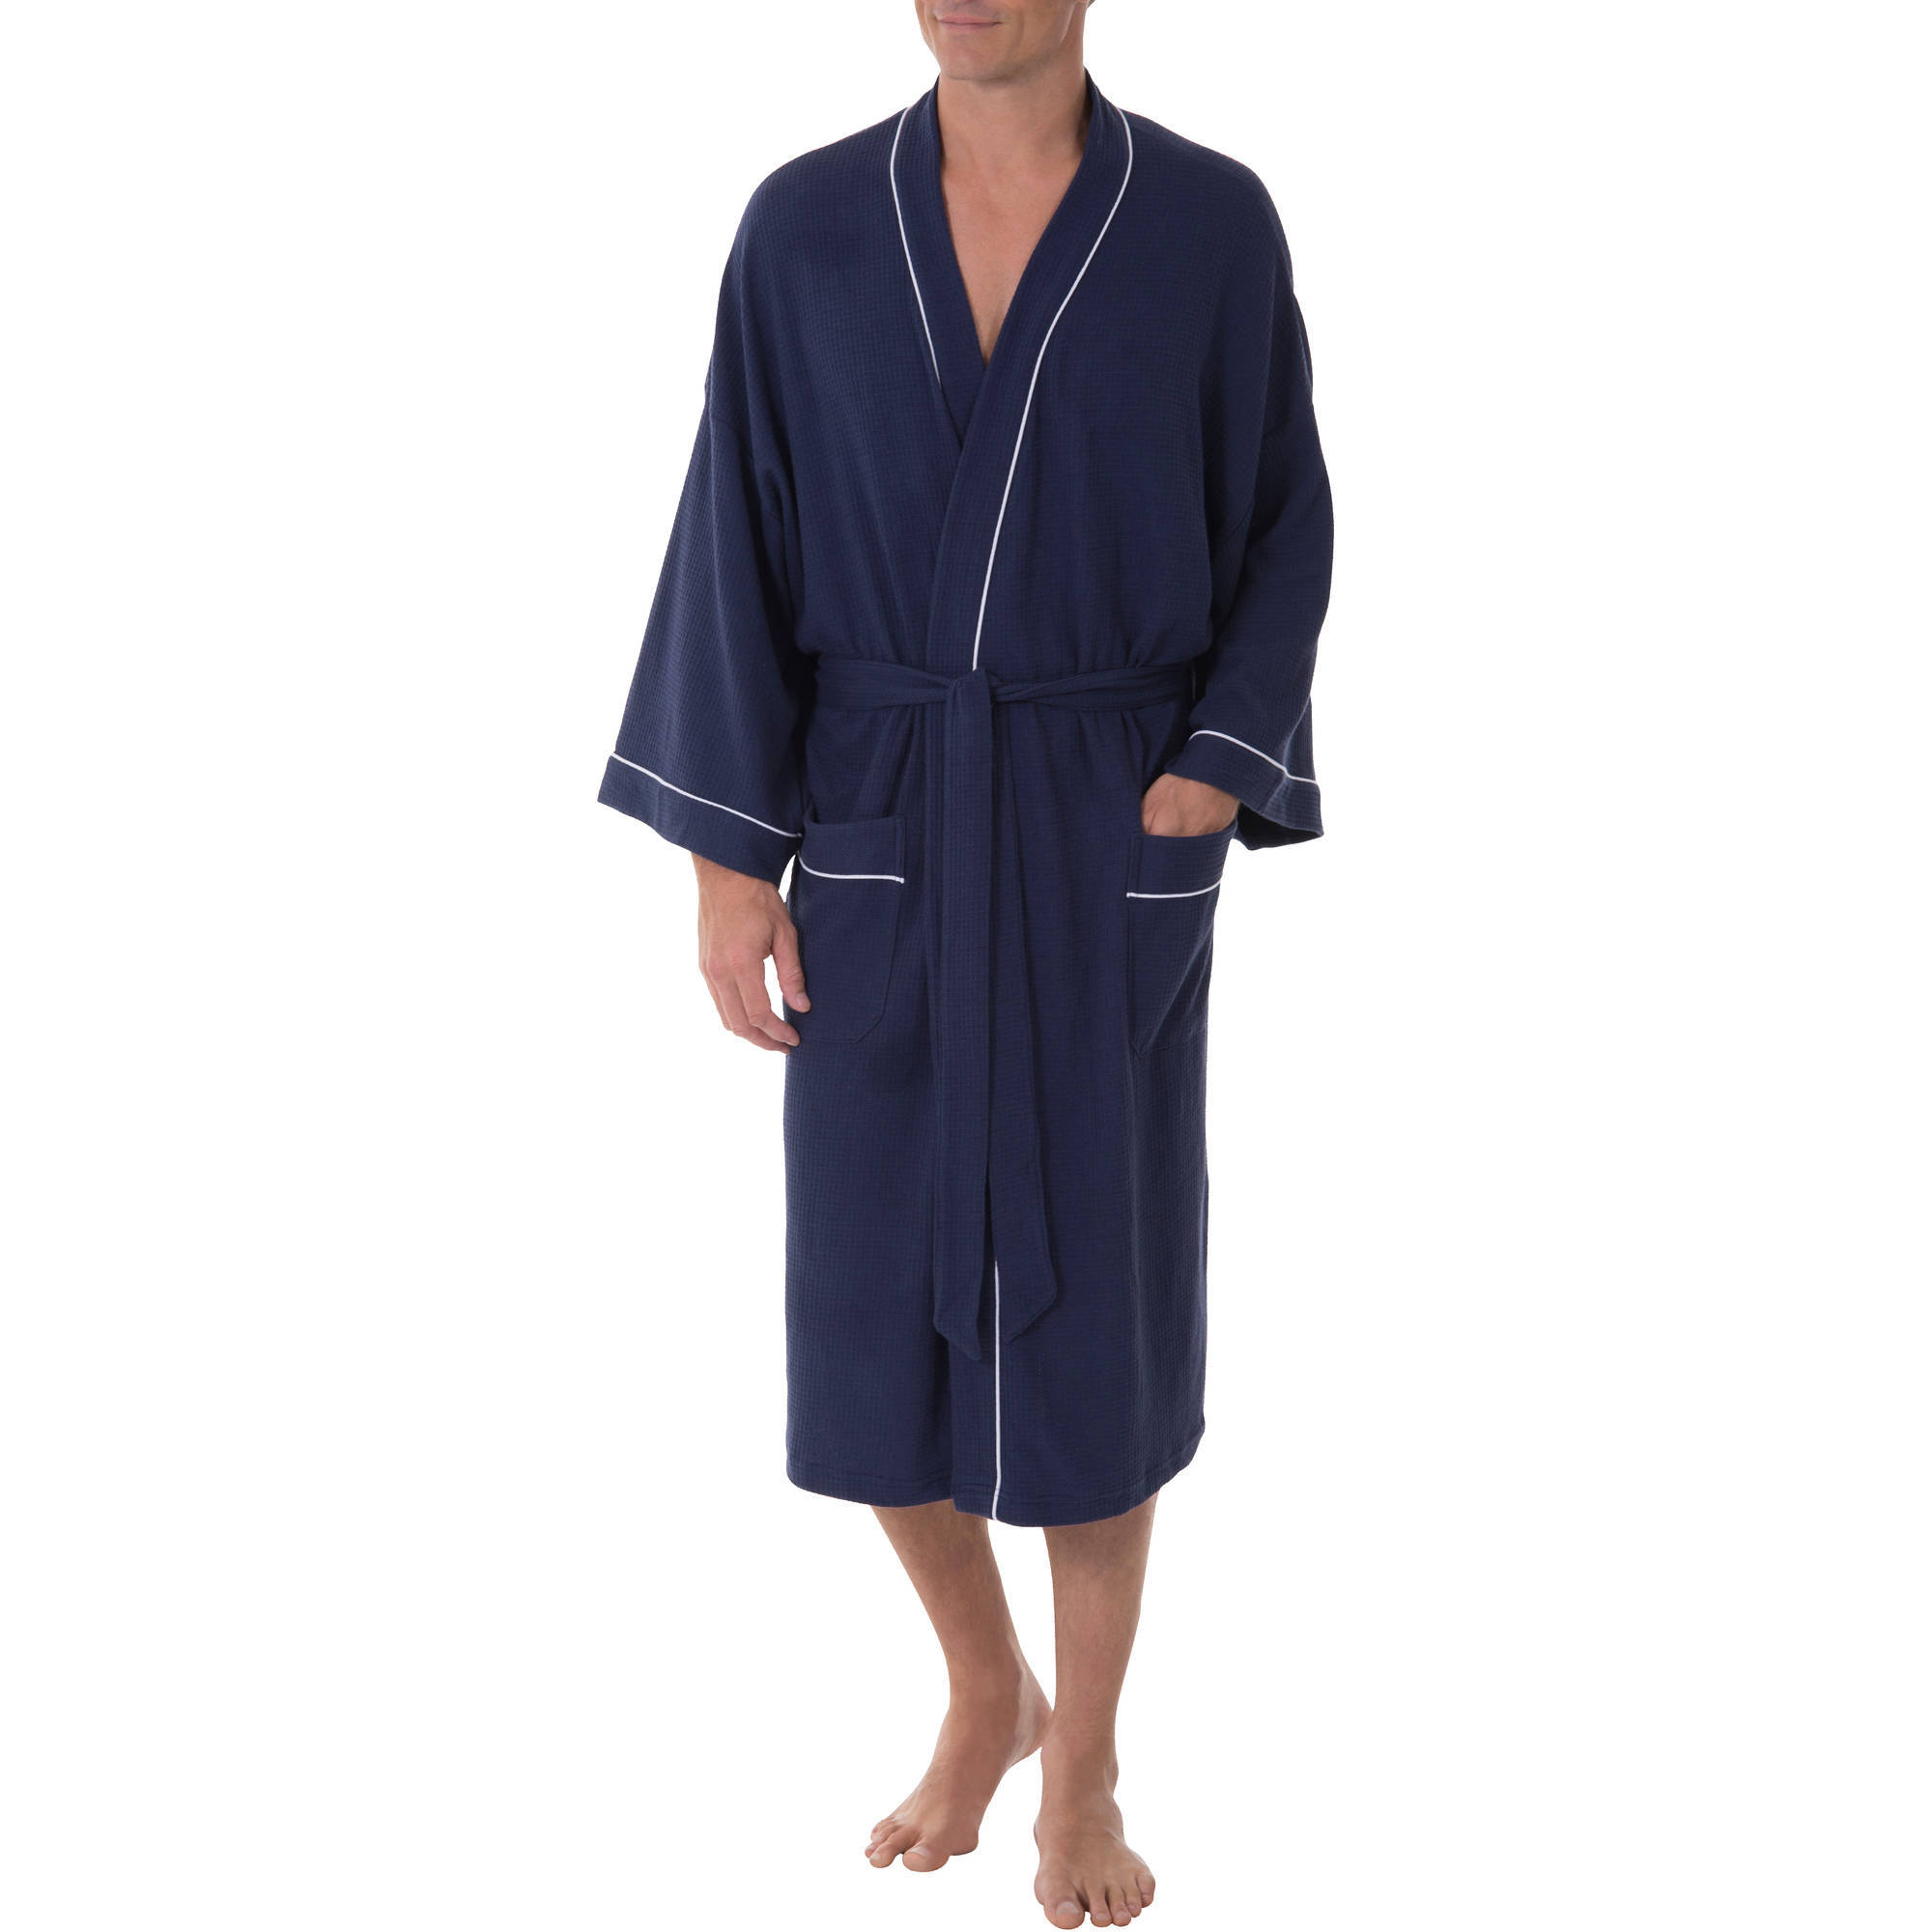 Big & Tall Sleepwear & Robes - Walmart.com